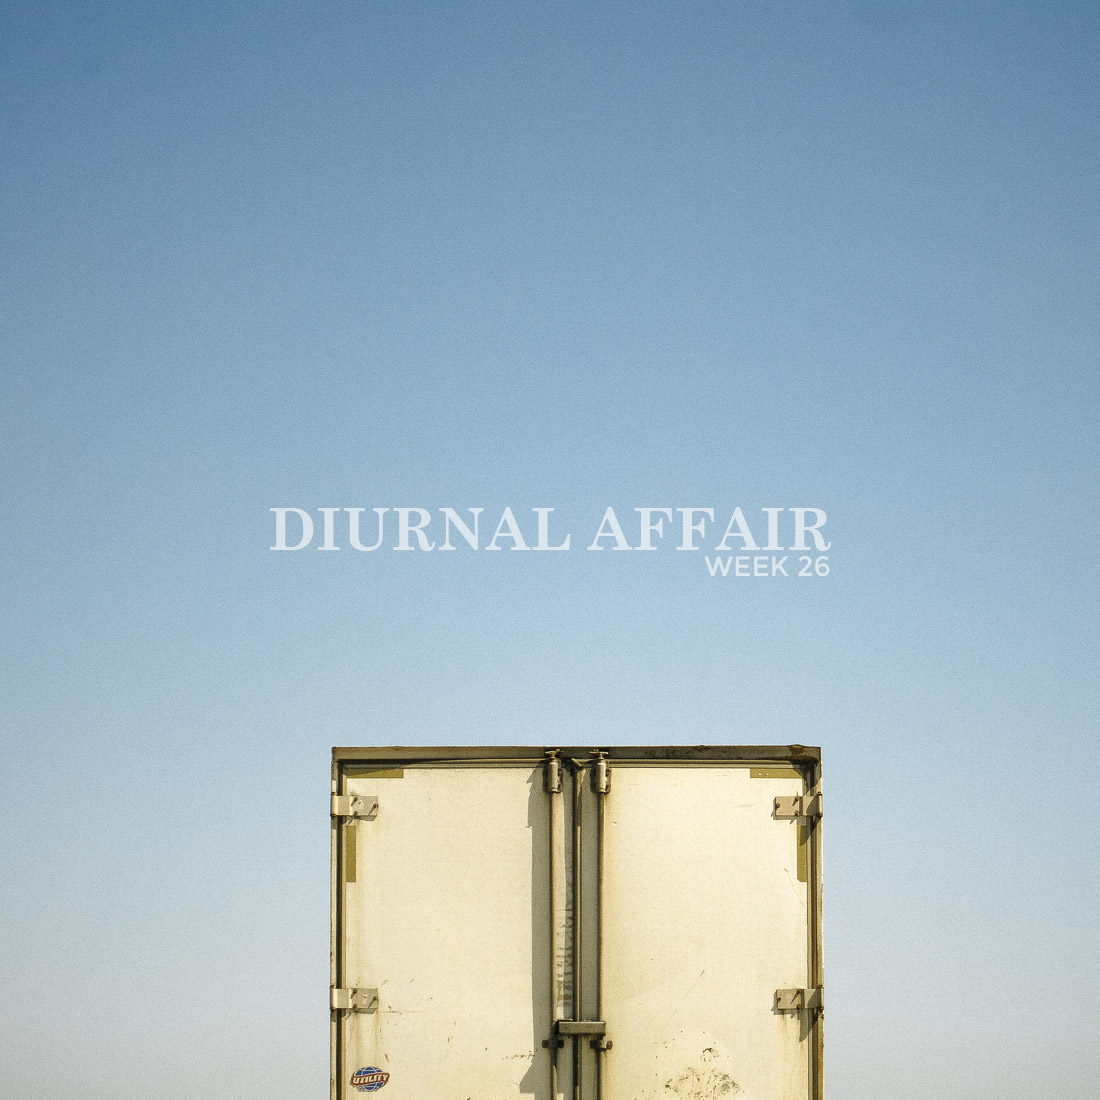 David Bernie Diurnal Affair Photography Project